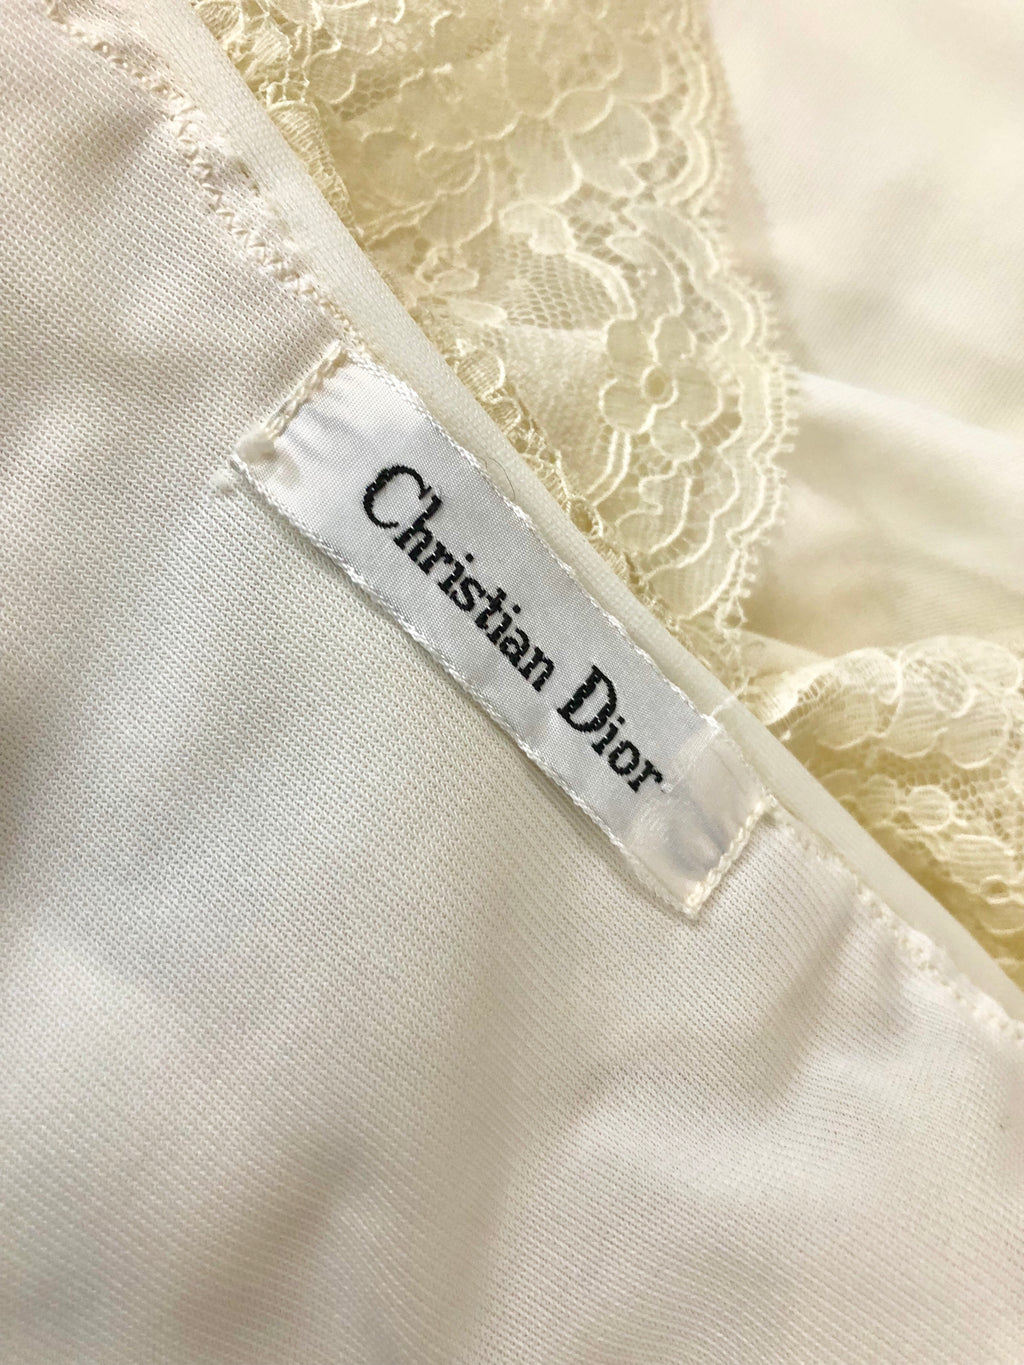 Christian Dior Vintage Peignoir Ivory Lace Nightgown Robe Size 34 / 36